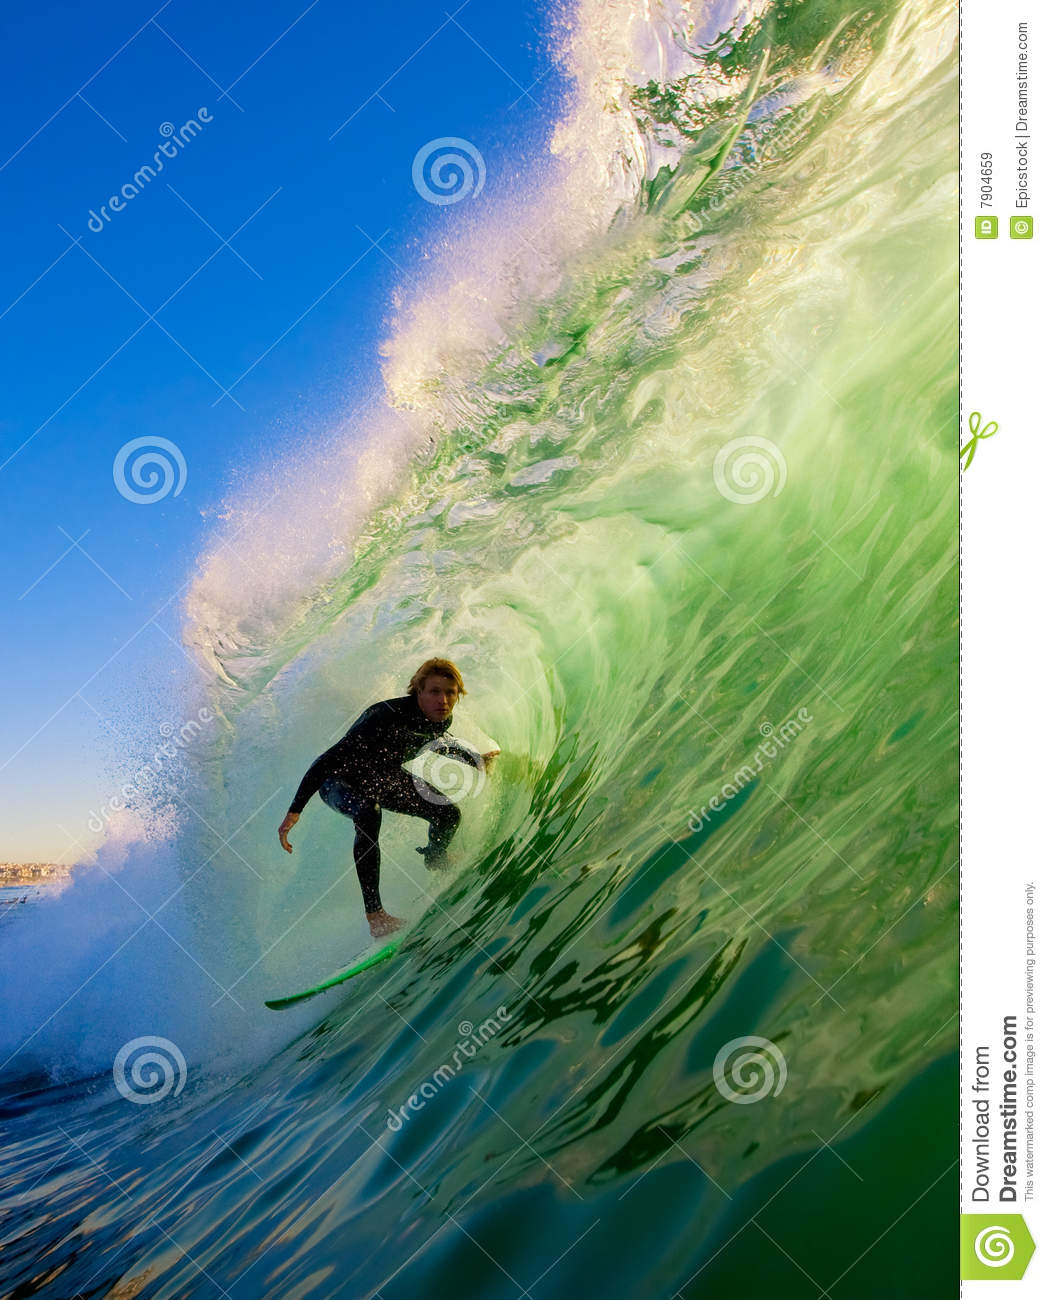 Surfer In The Tube Riding A Big Wave